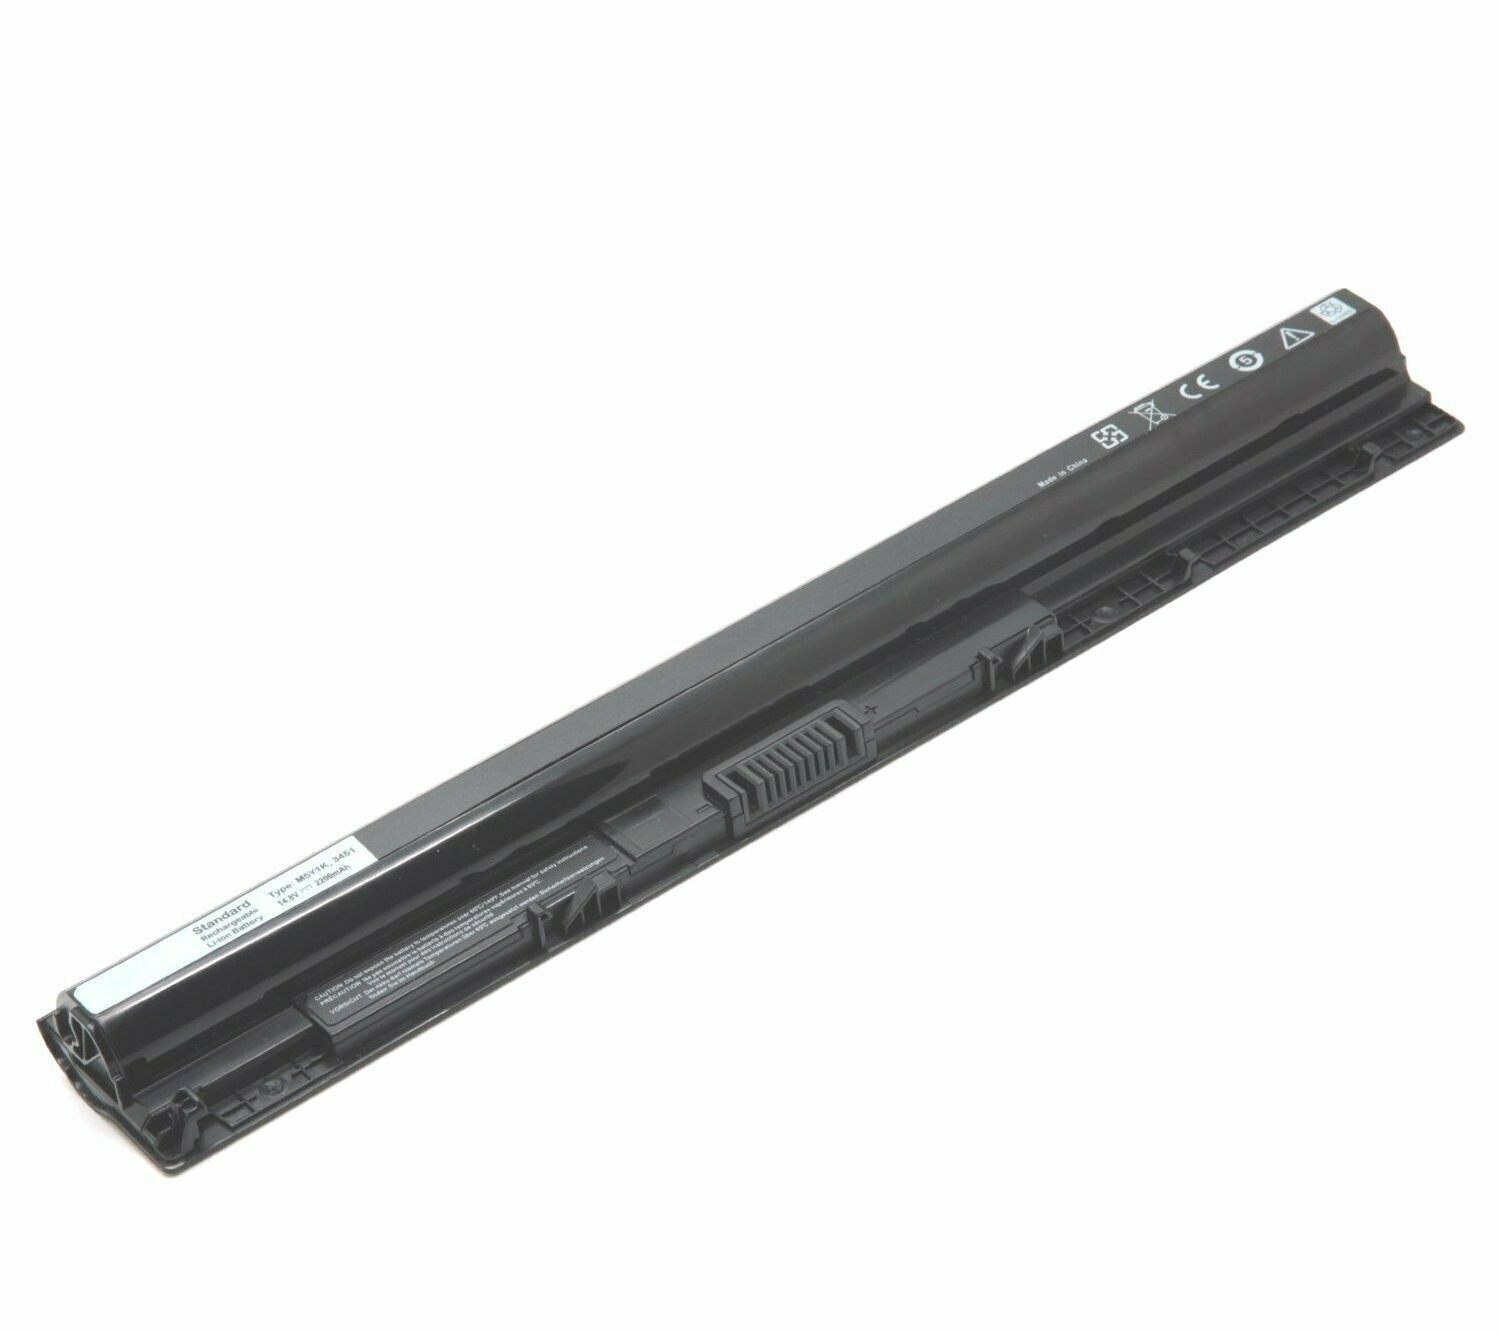 Dell Inspiron 5558 3458 3558 3551 5558 3451 5758 Vostro 3458 3558 laptop battery